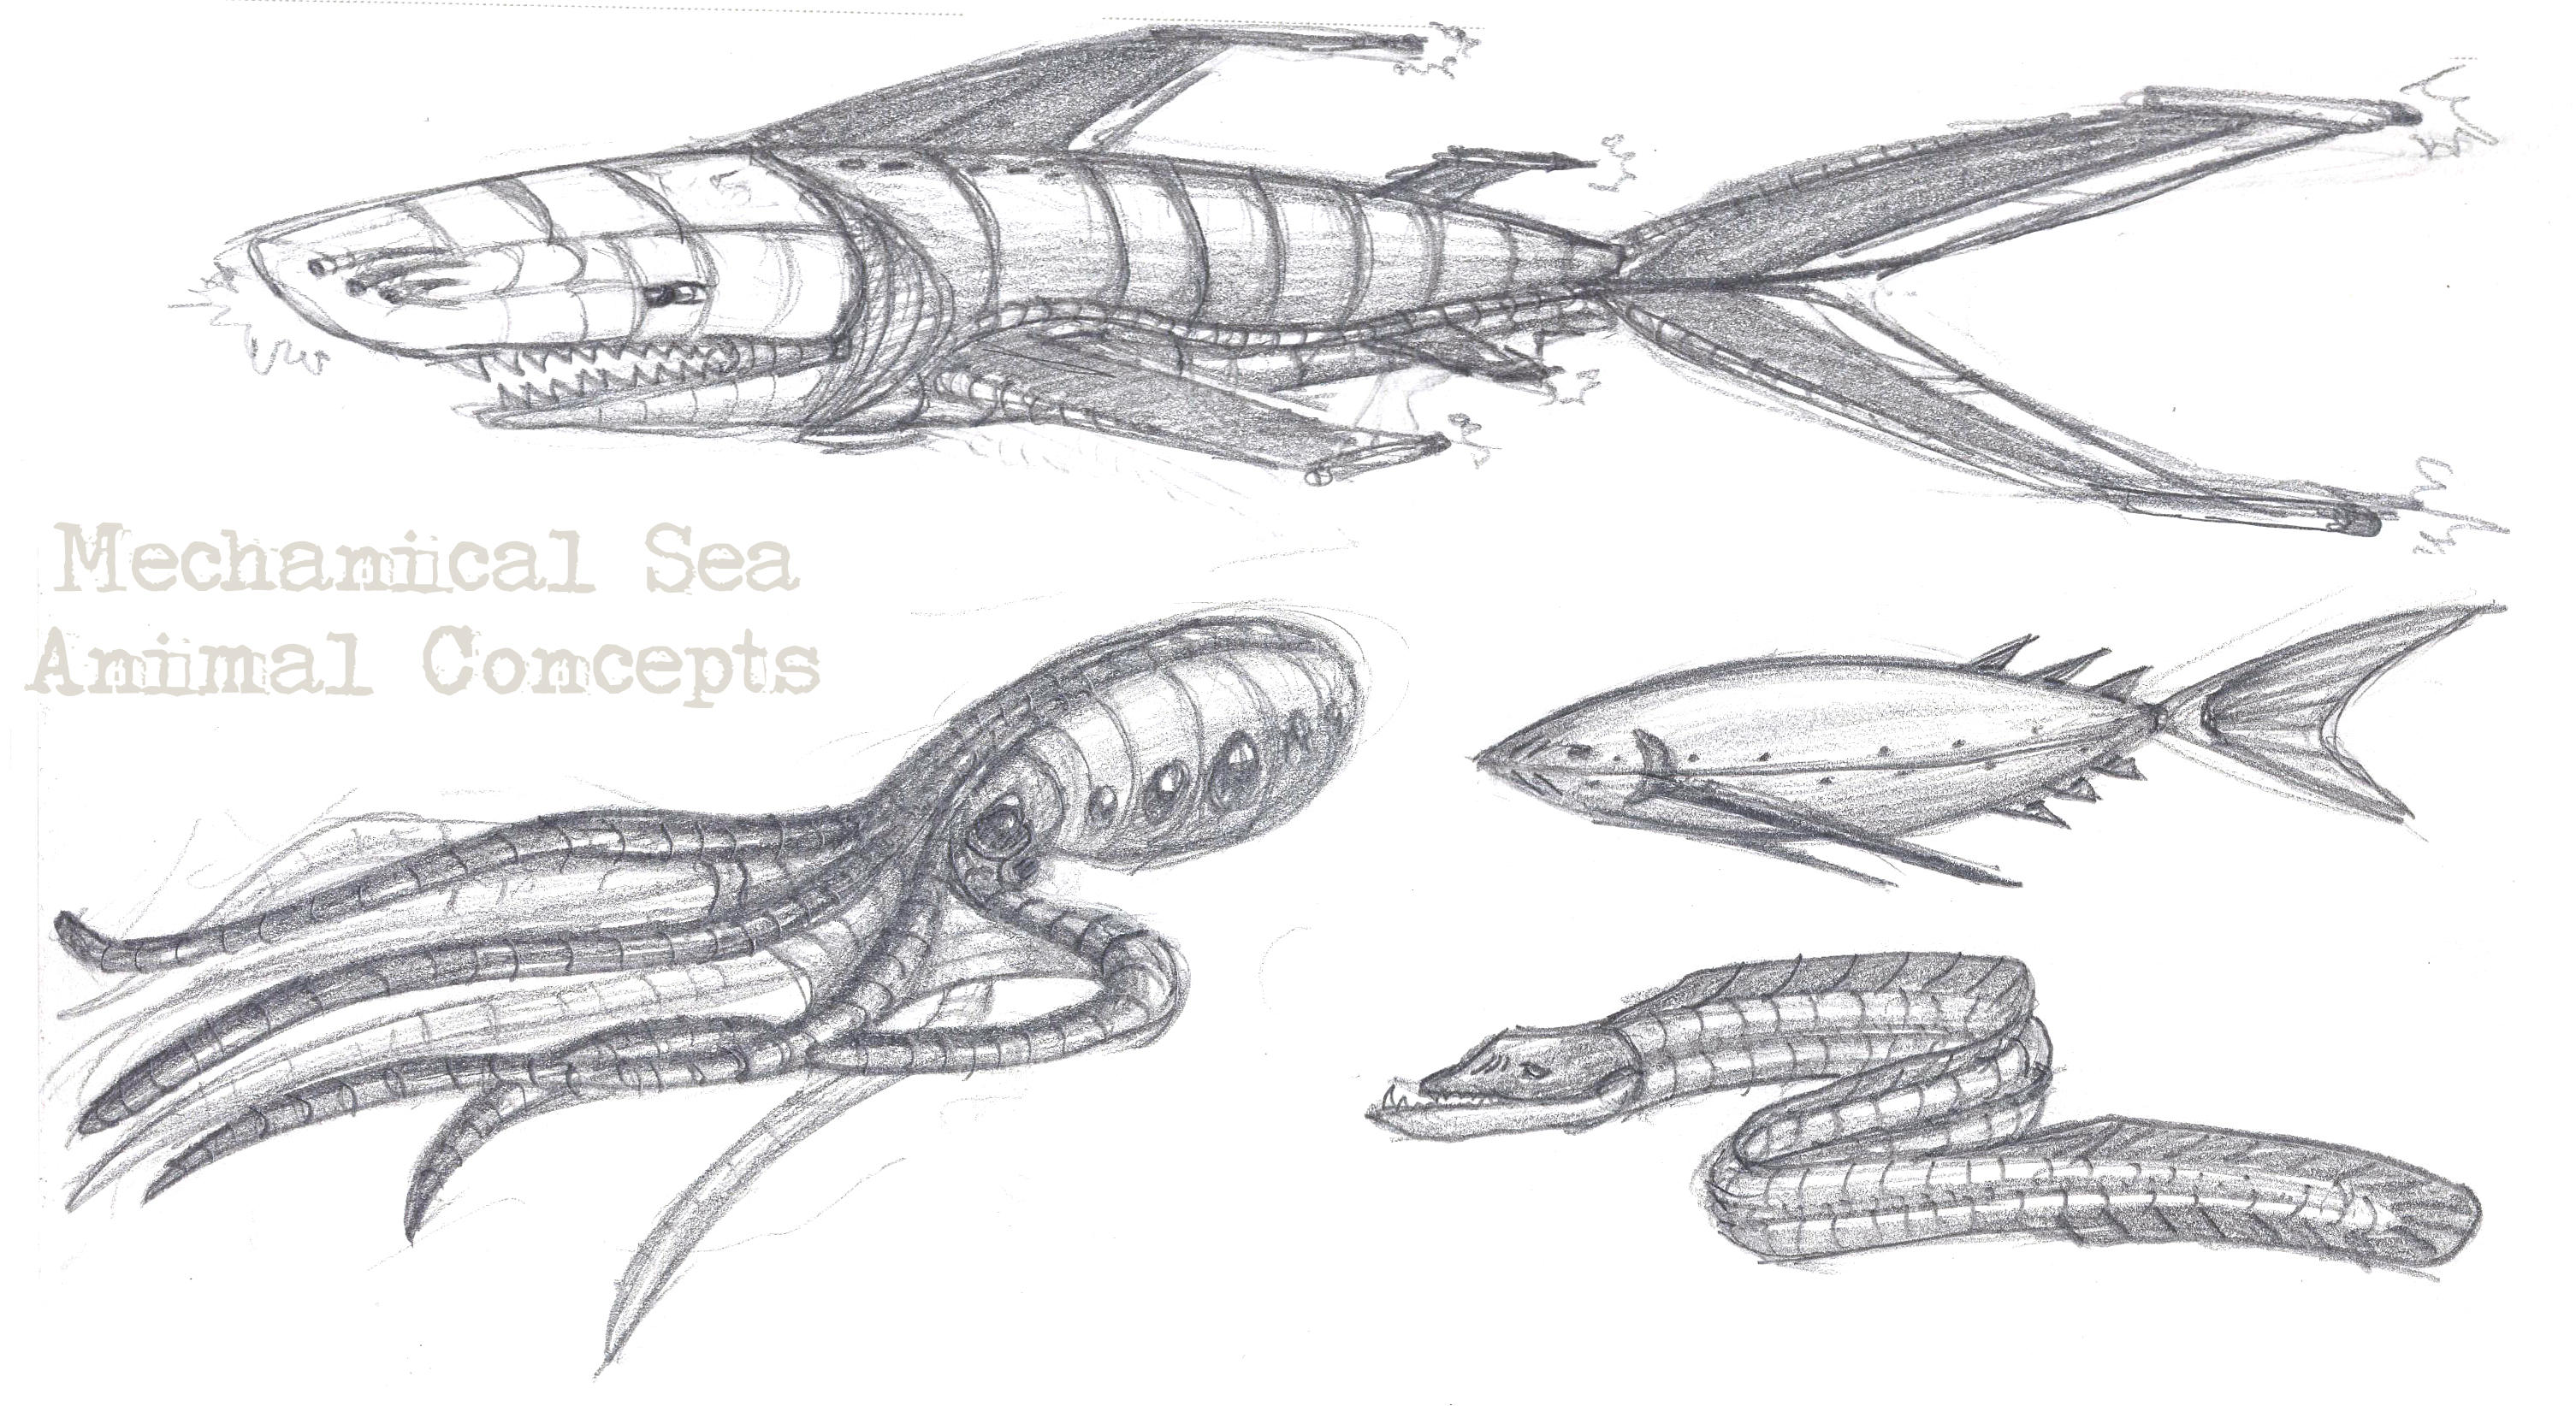 Mechanical Sea Animal Concepts by Verdego